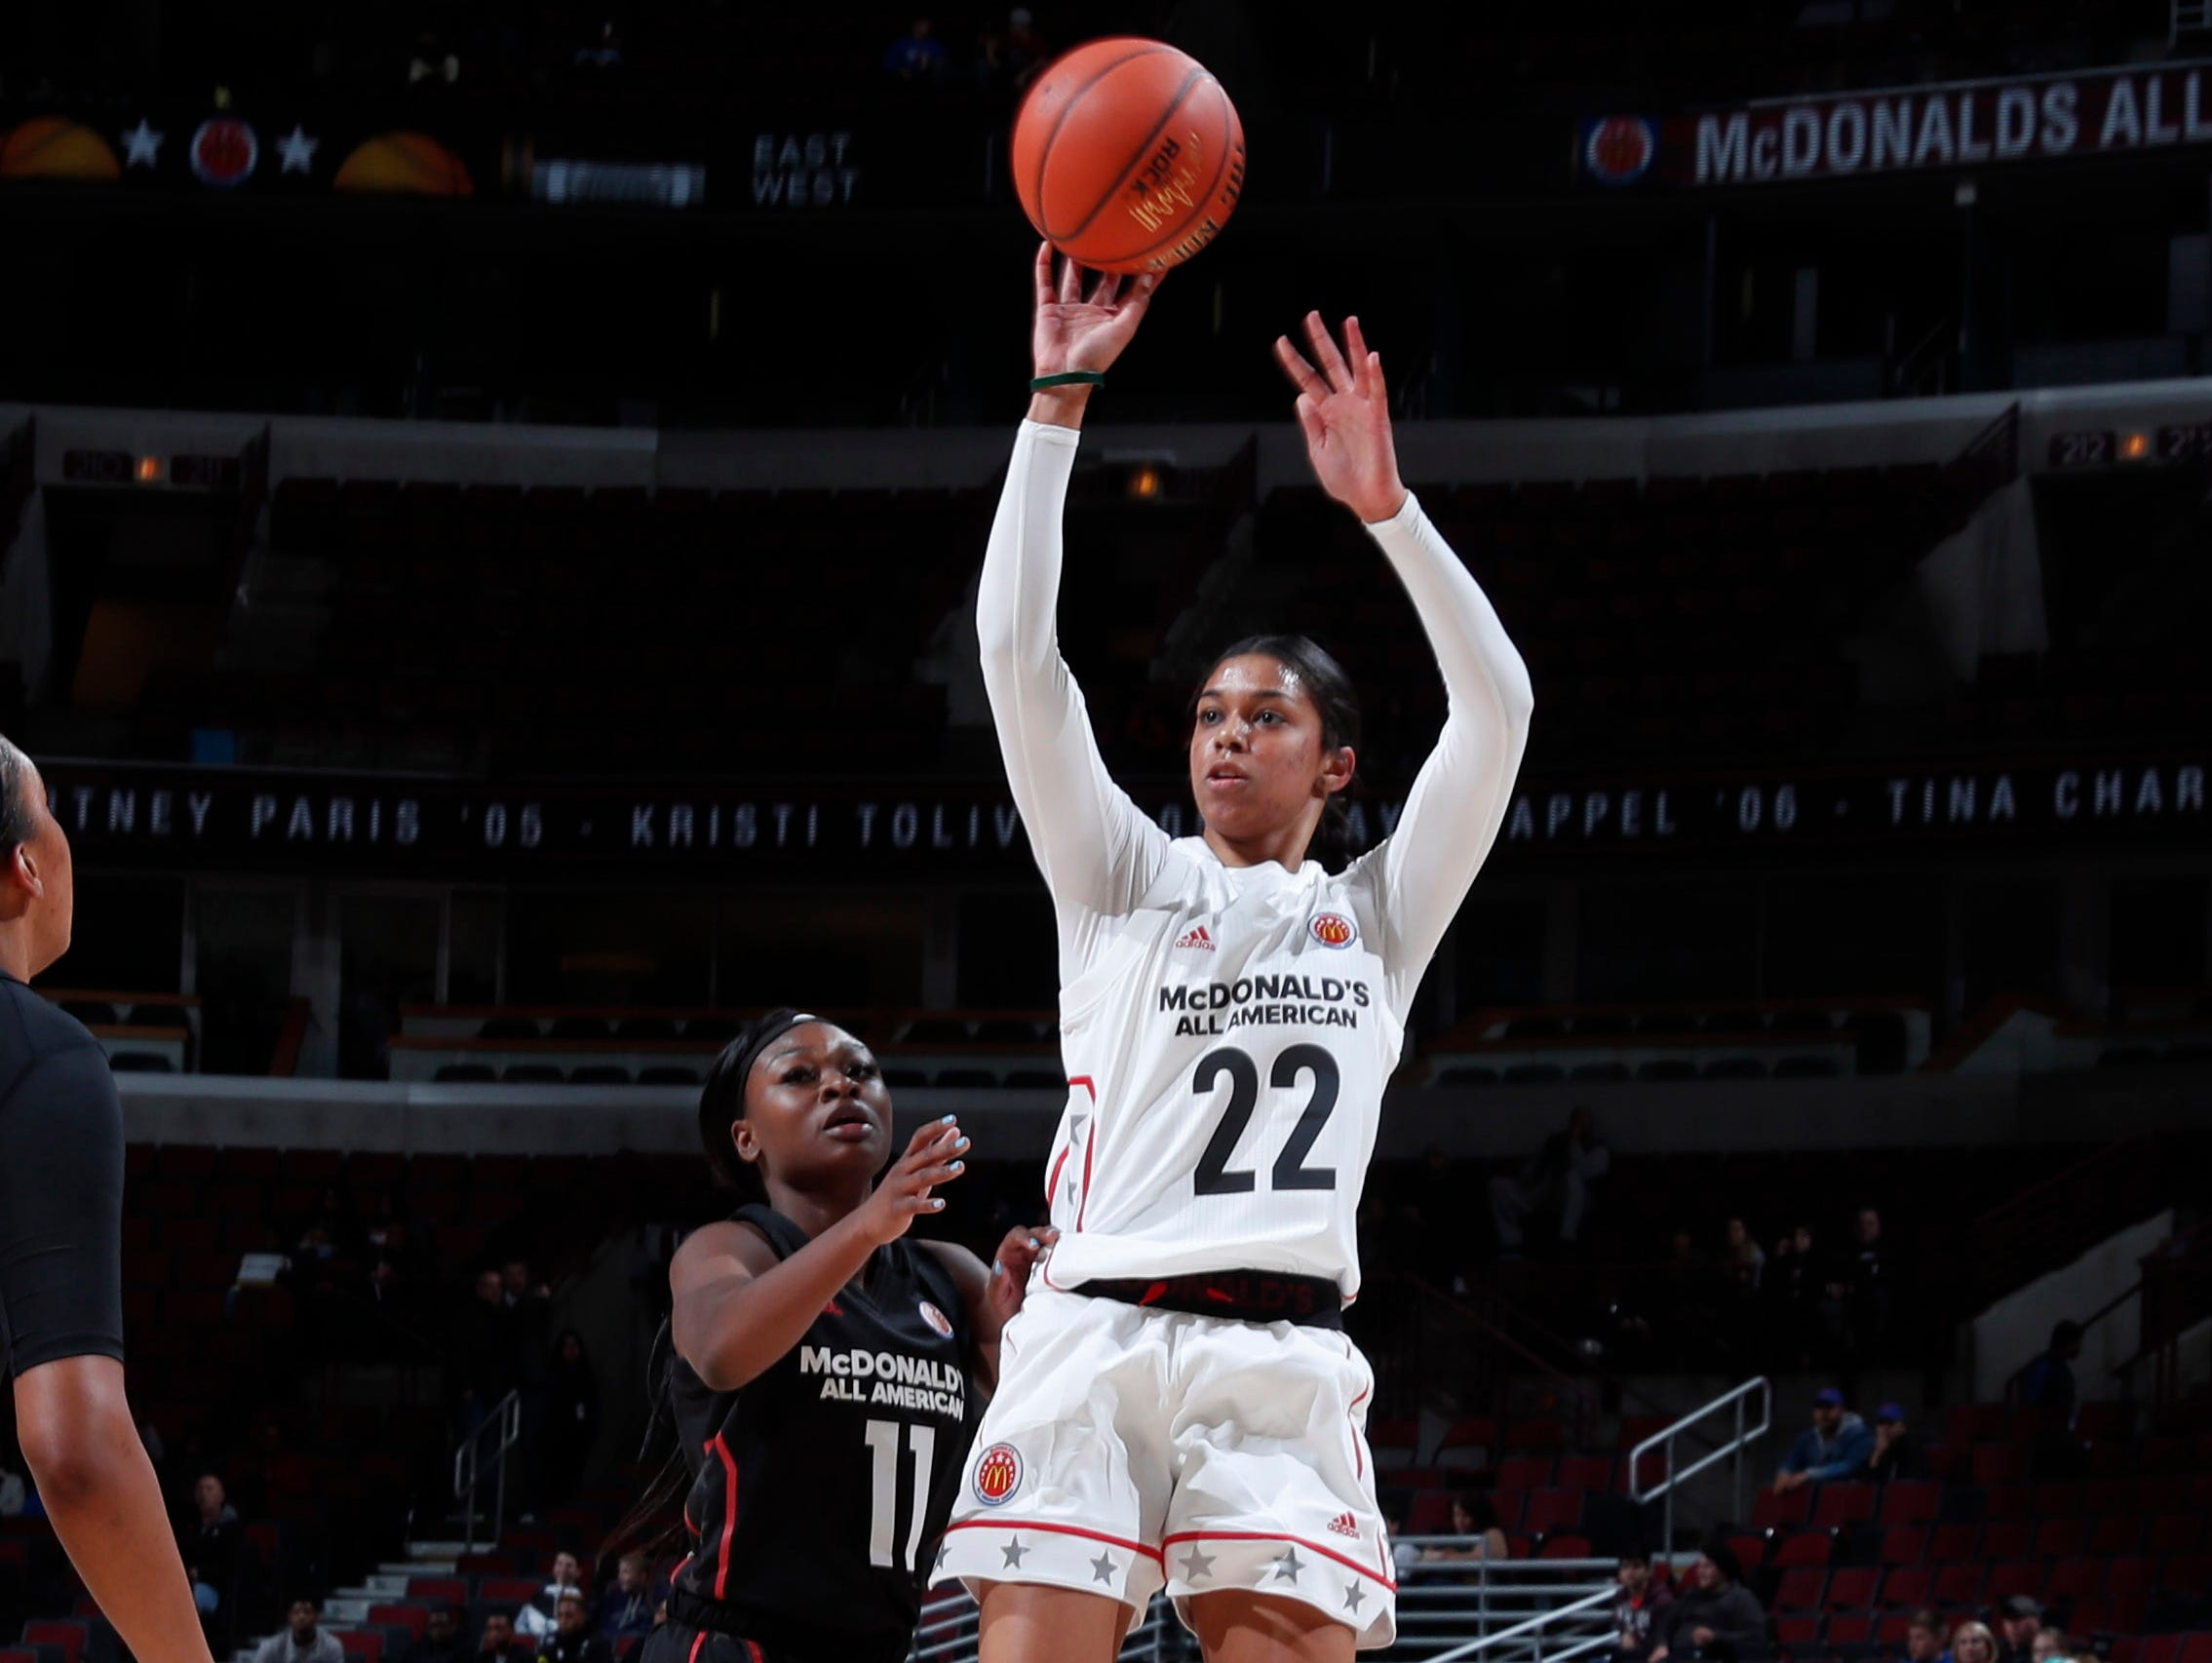 Mar 29, 2017; Chicago, IL, USA; McDonald's High School All-American West guard Evina Westrbrook (22) takes a shot during the 40th Annual McDonald's High School All-American Game at the United Center. Mandatory Credit: Brian Spurlock-USA TODAY Sports